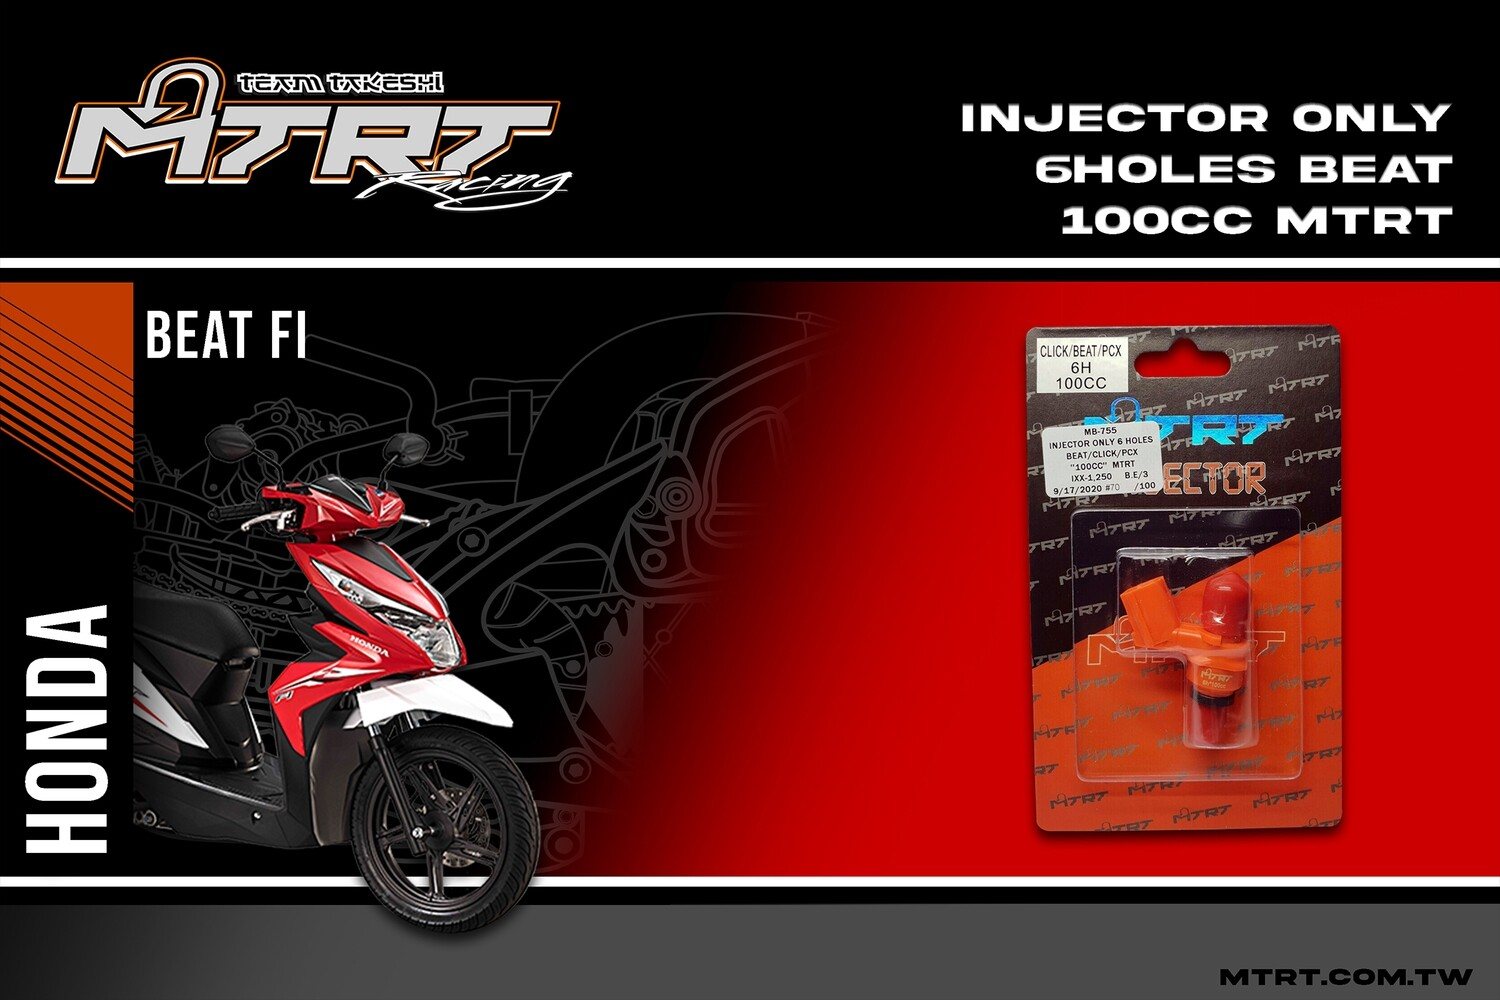 INJECTOR ONLY 6HOLES BEAT CLICK PCX 100CC MTRT